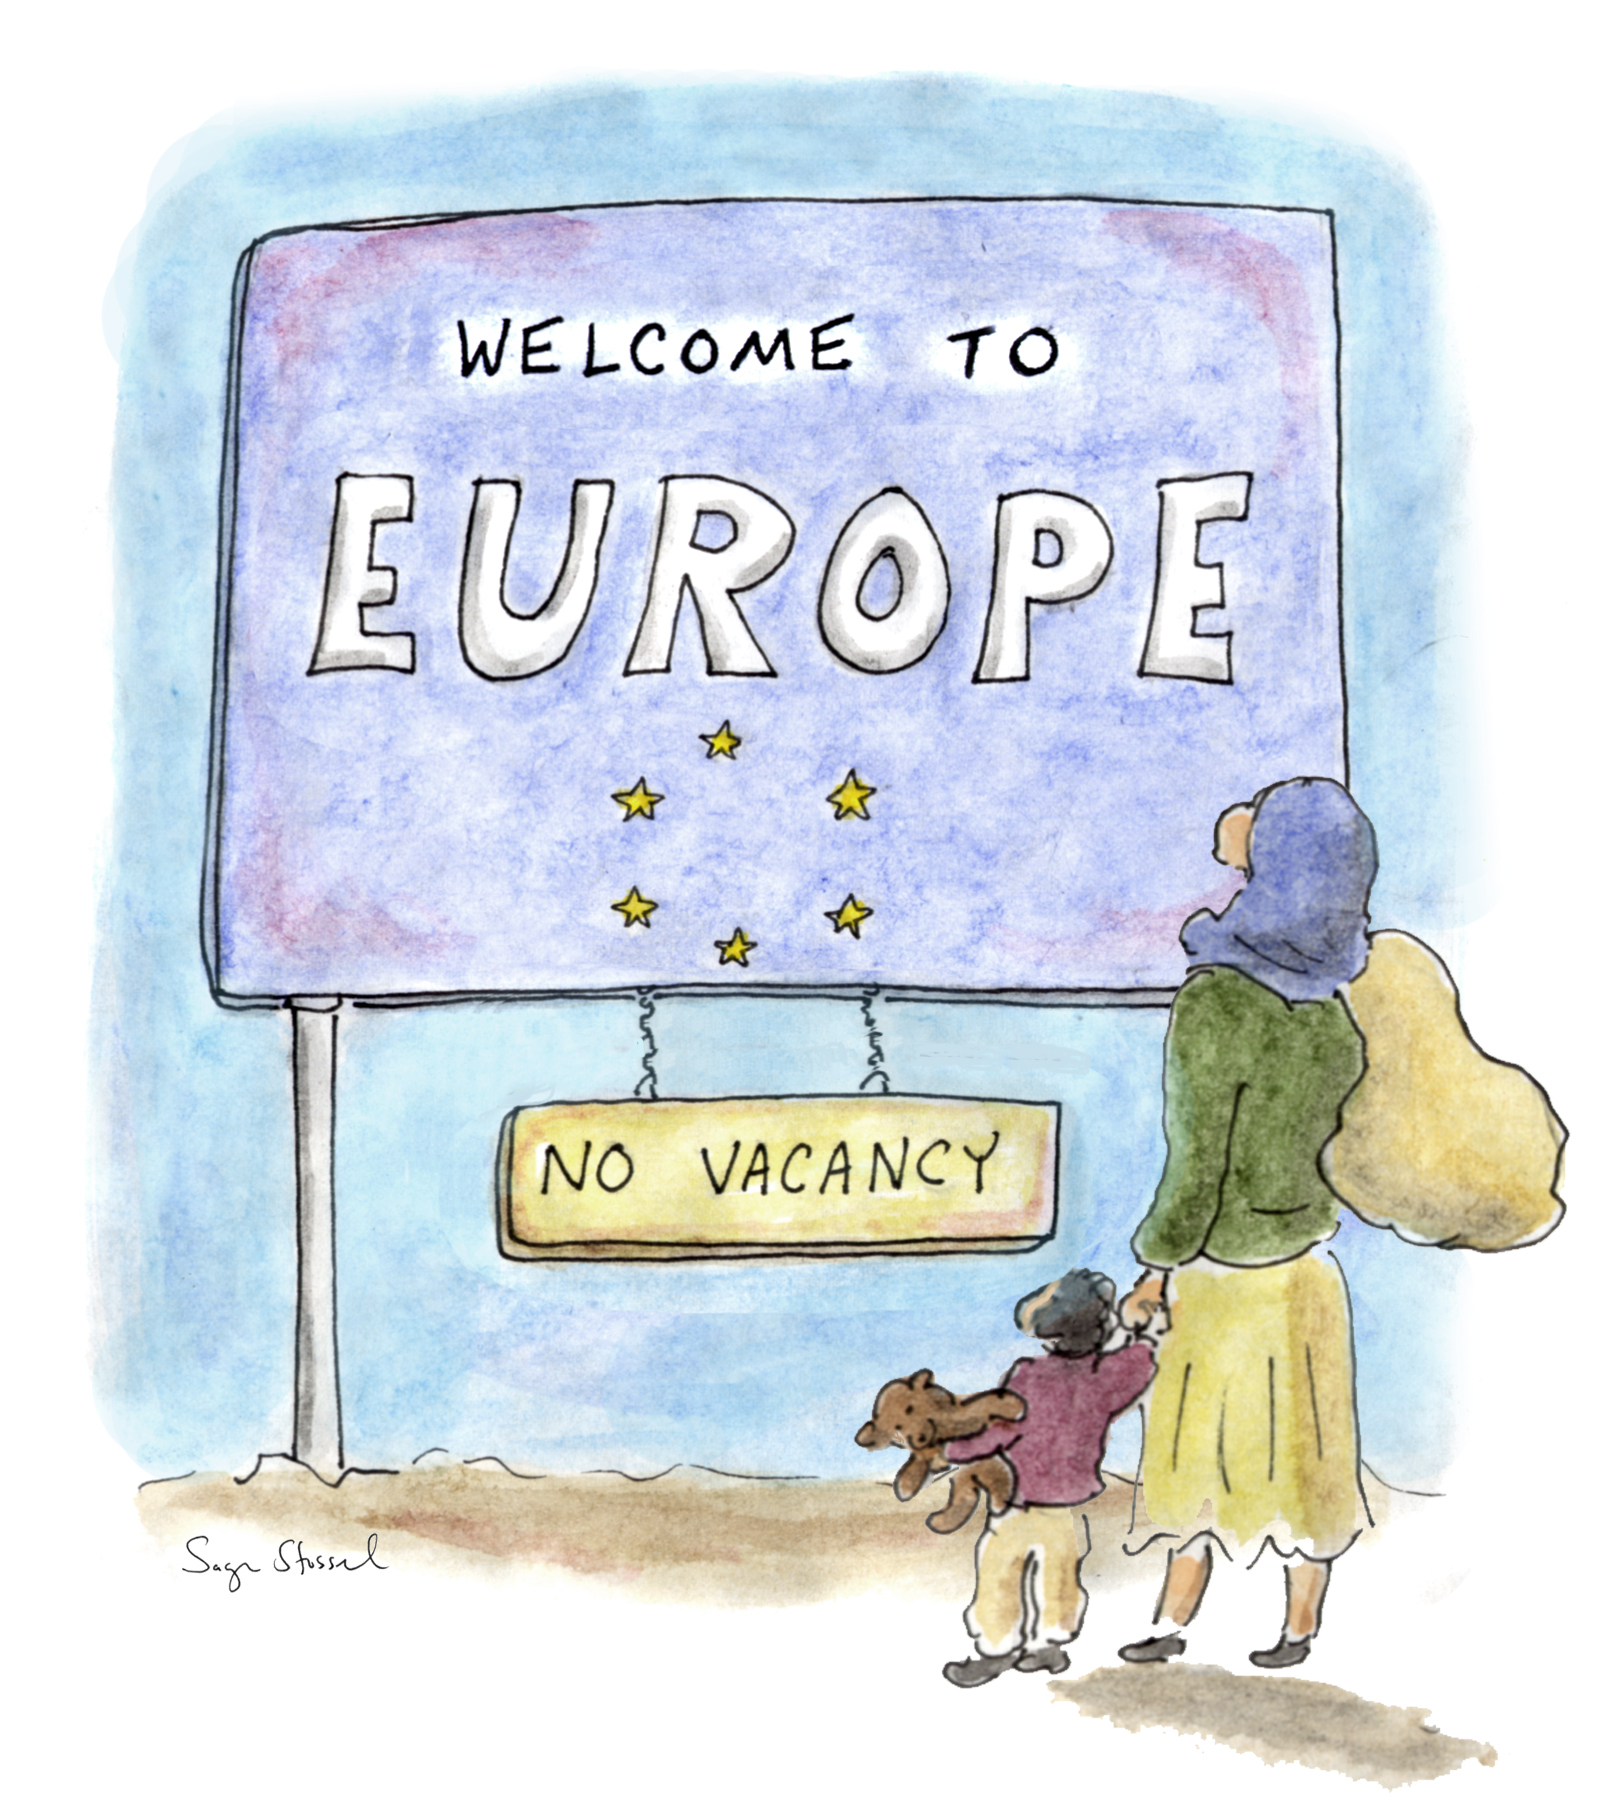 europe migrant crisis, syria, croatia, serbia, eu, germany, greece, viktor orban, asylum, cartoon